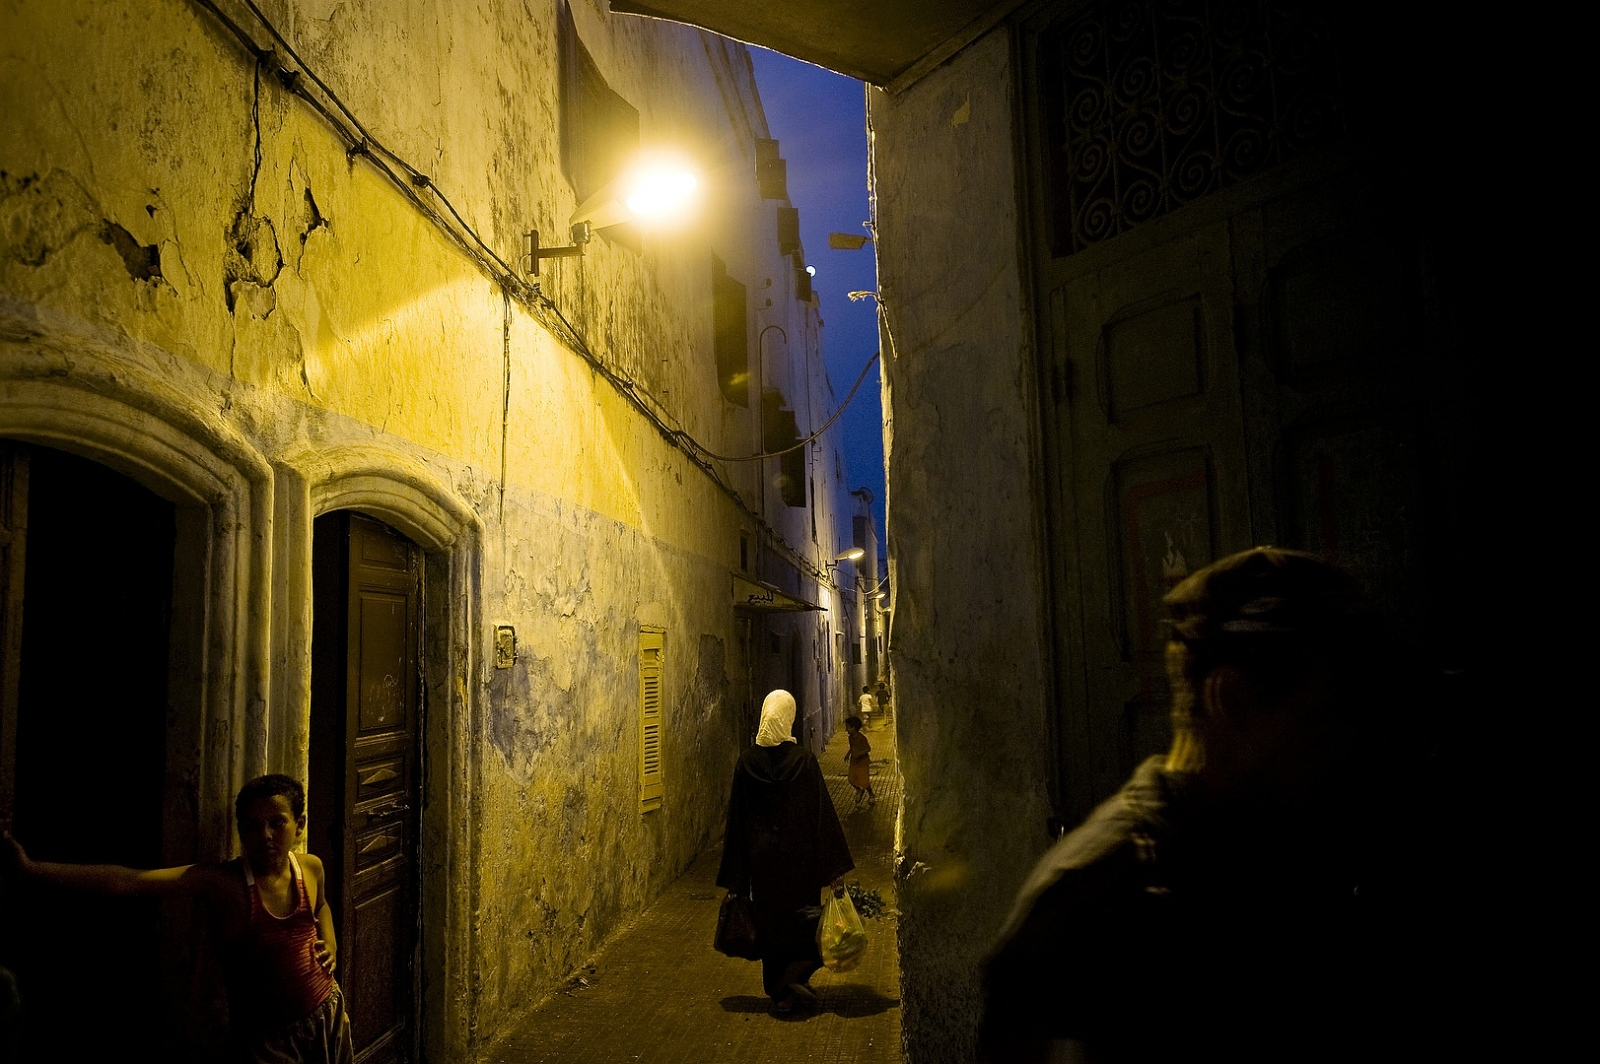 2009 - The Mellah of Rabat was once home to a large population of Jews, but  is now home to the poorest Muslims in the Medina.